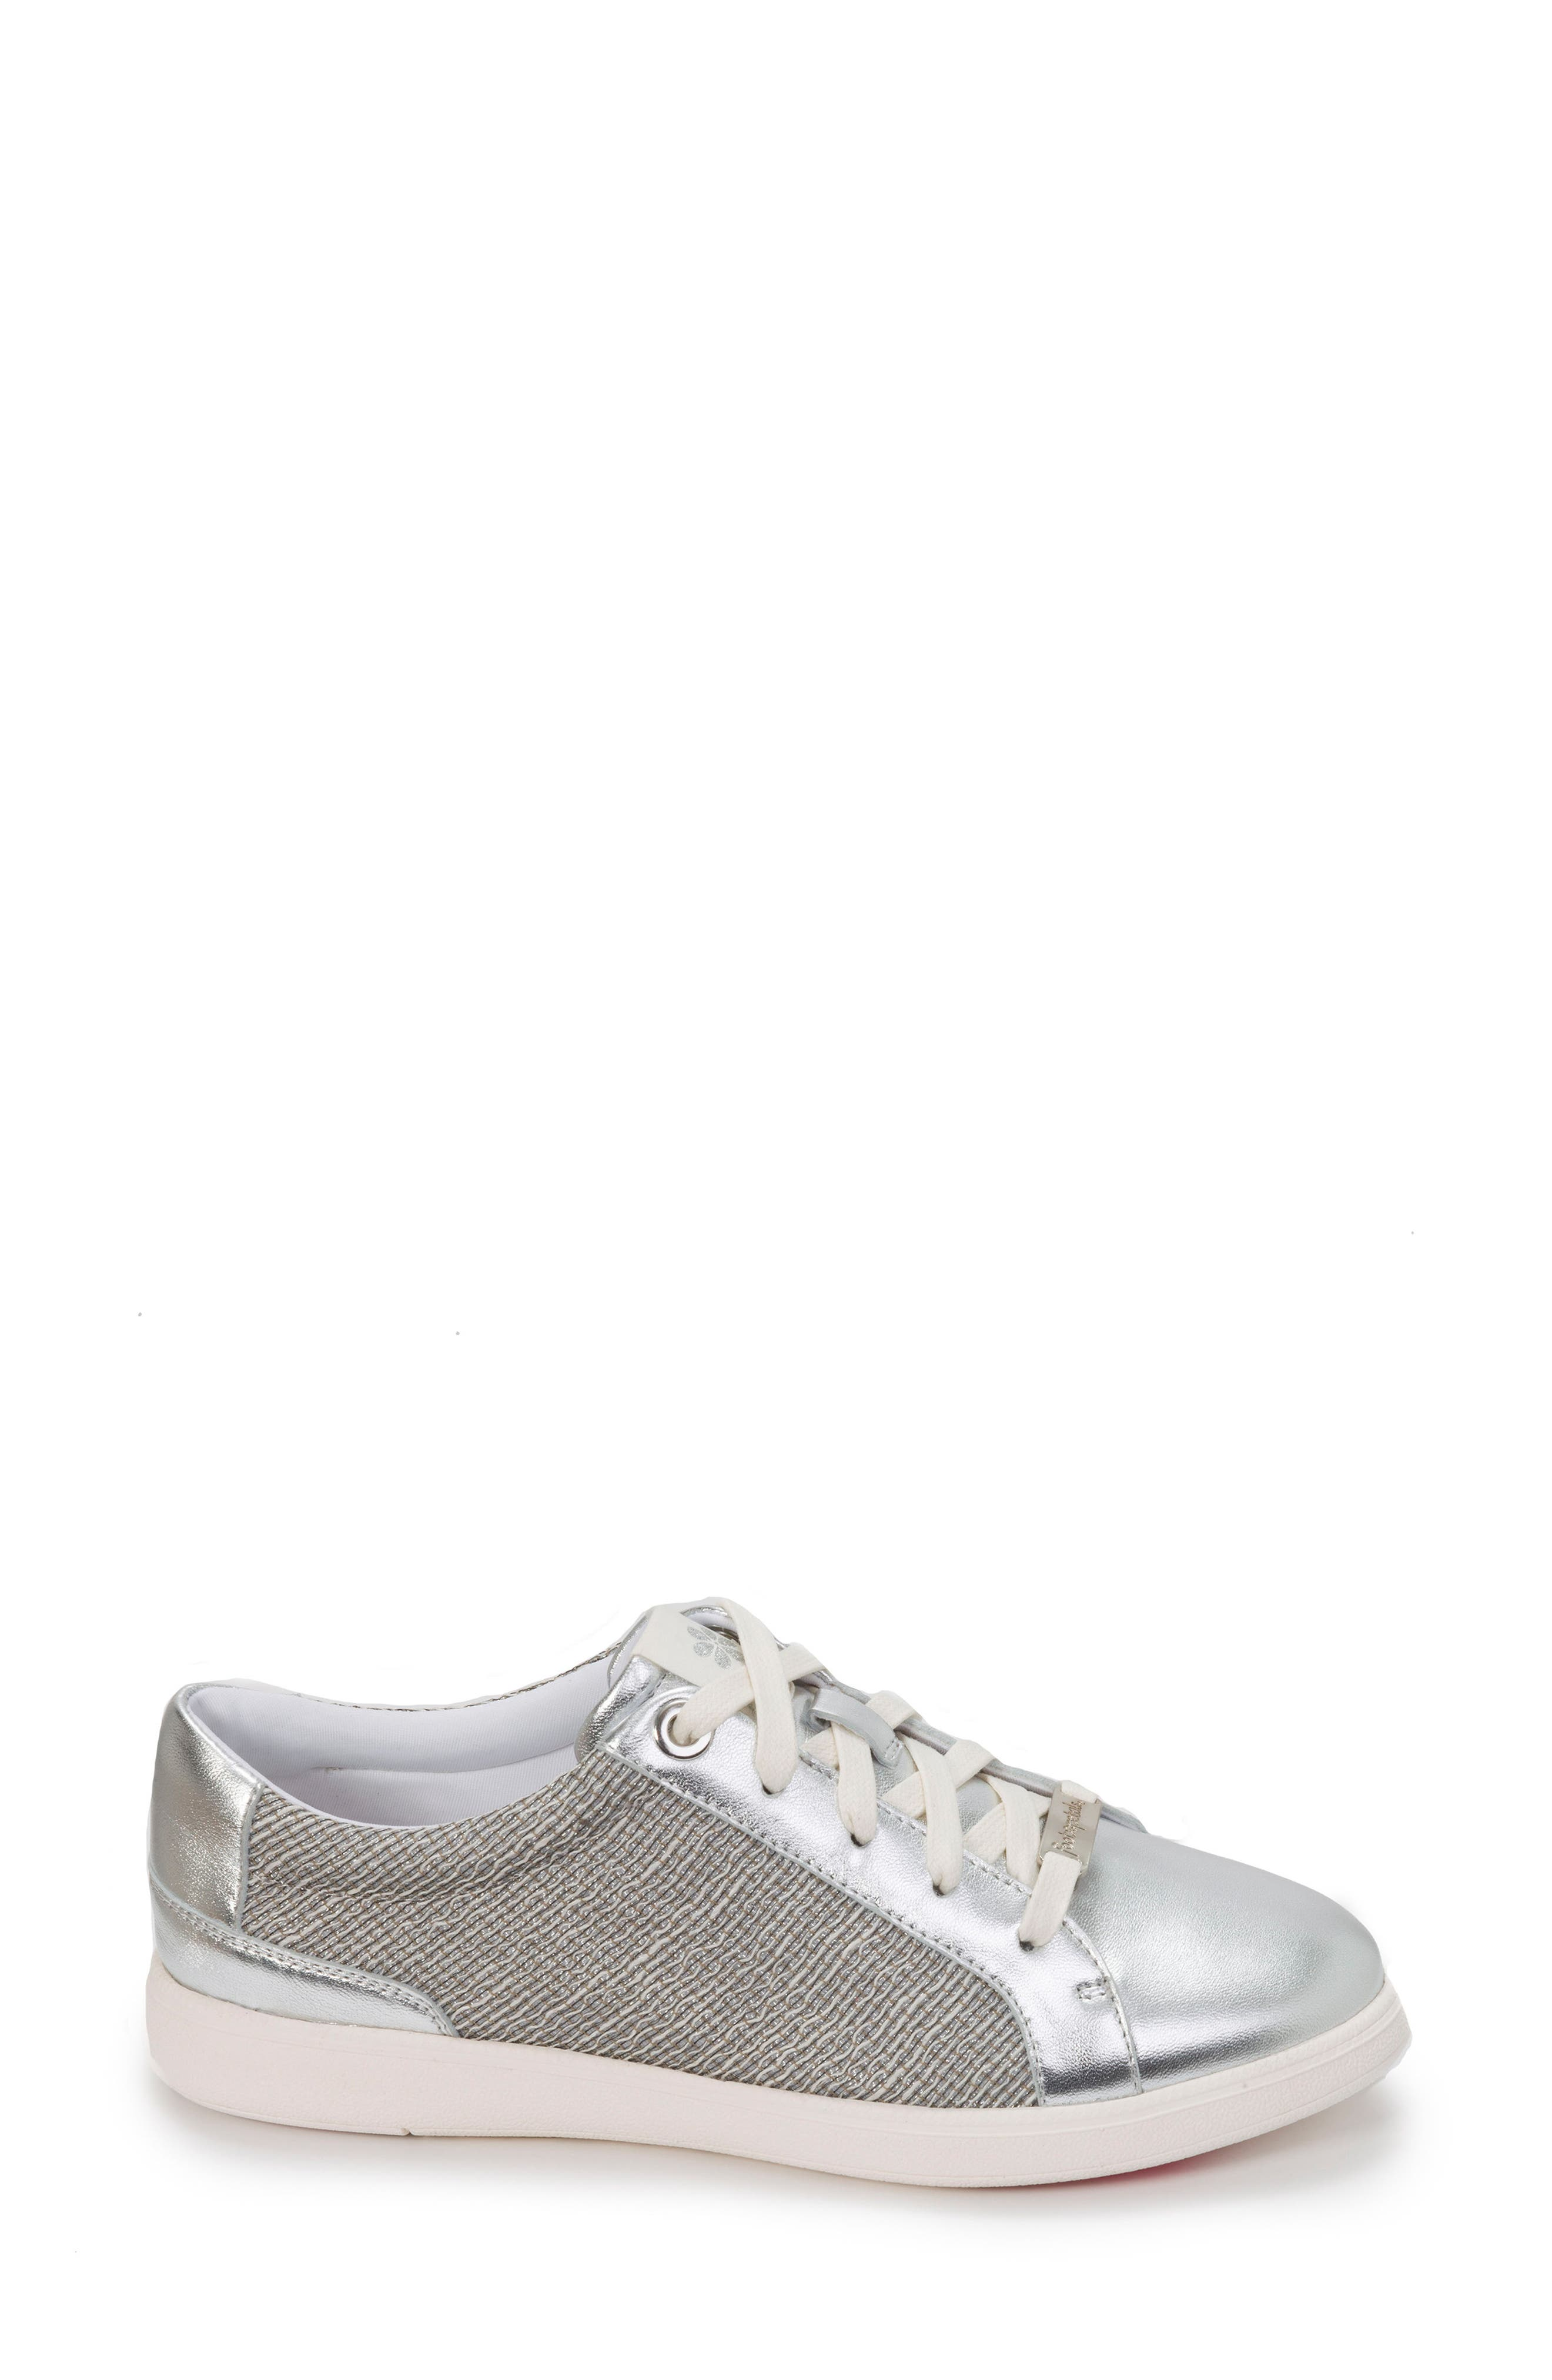 Andi Sneaker,                             Alternate thumbnail 3, color,                             Silver Leather